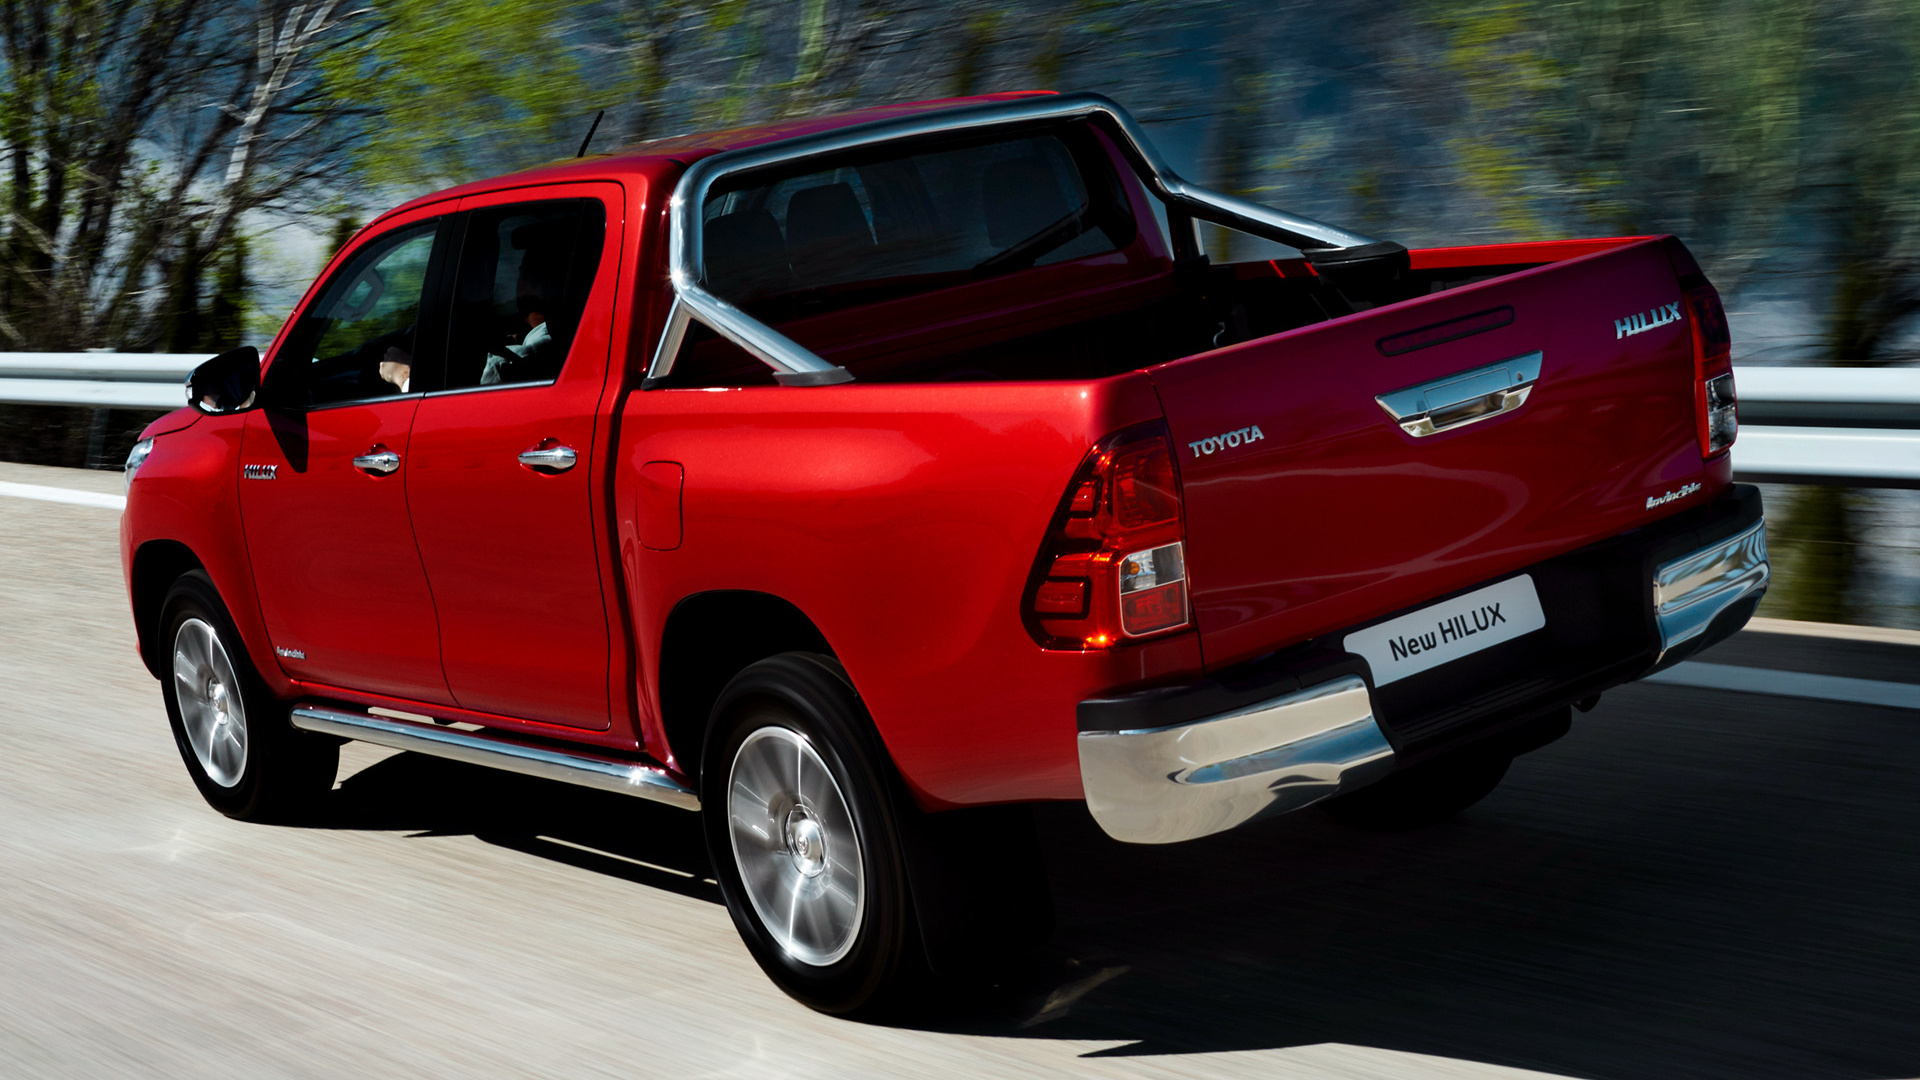 2015 Toyota Hilux Invincible Double Cab Wallpapers And